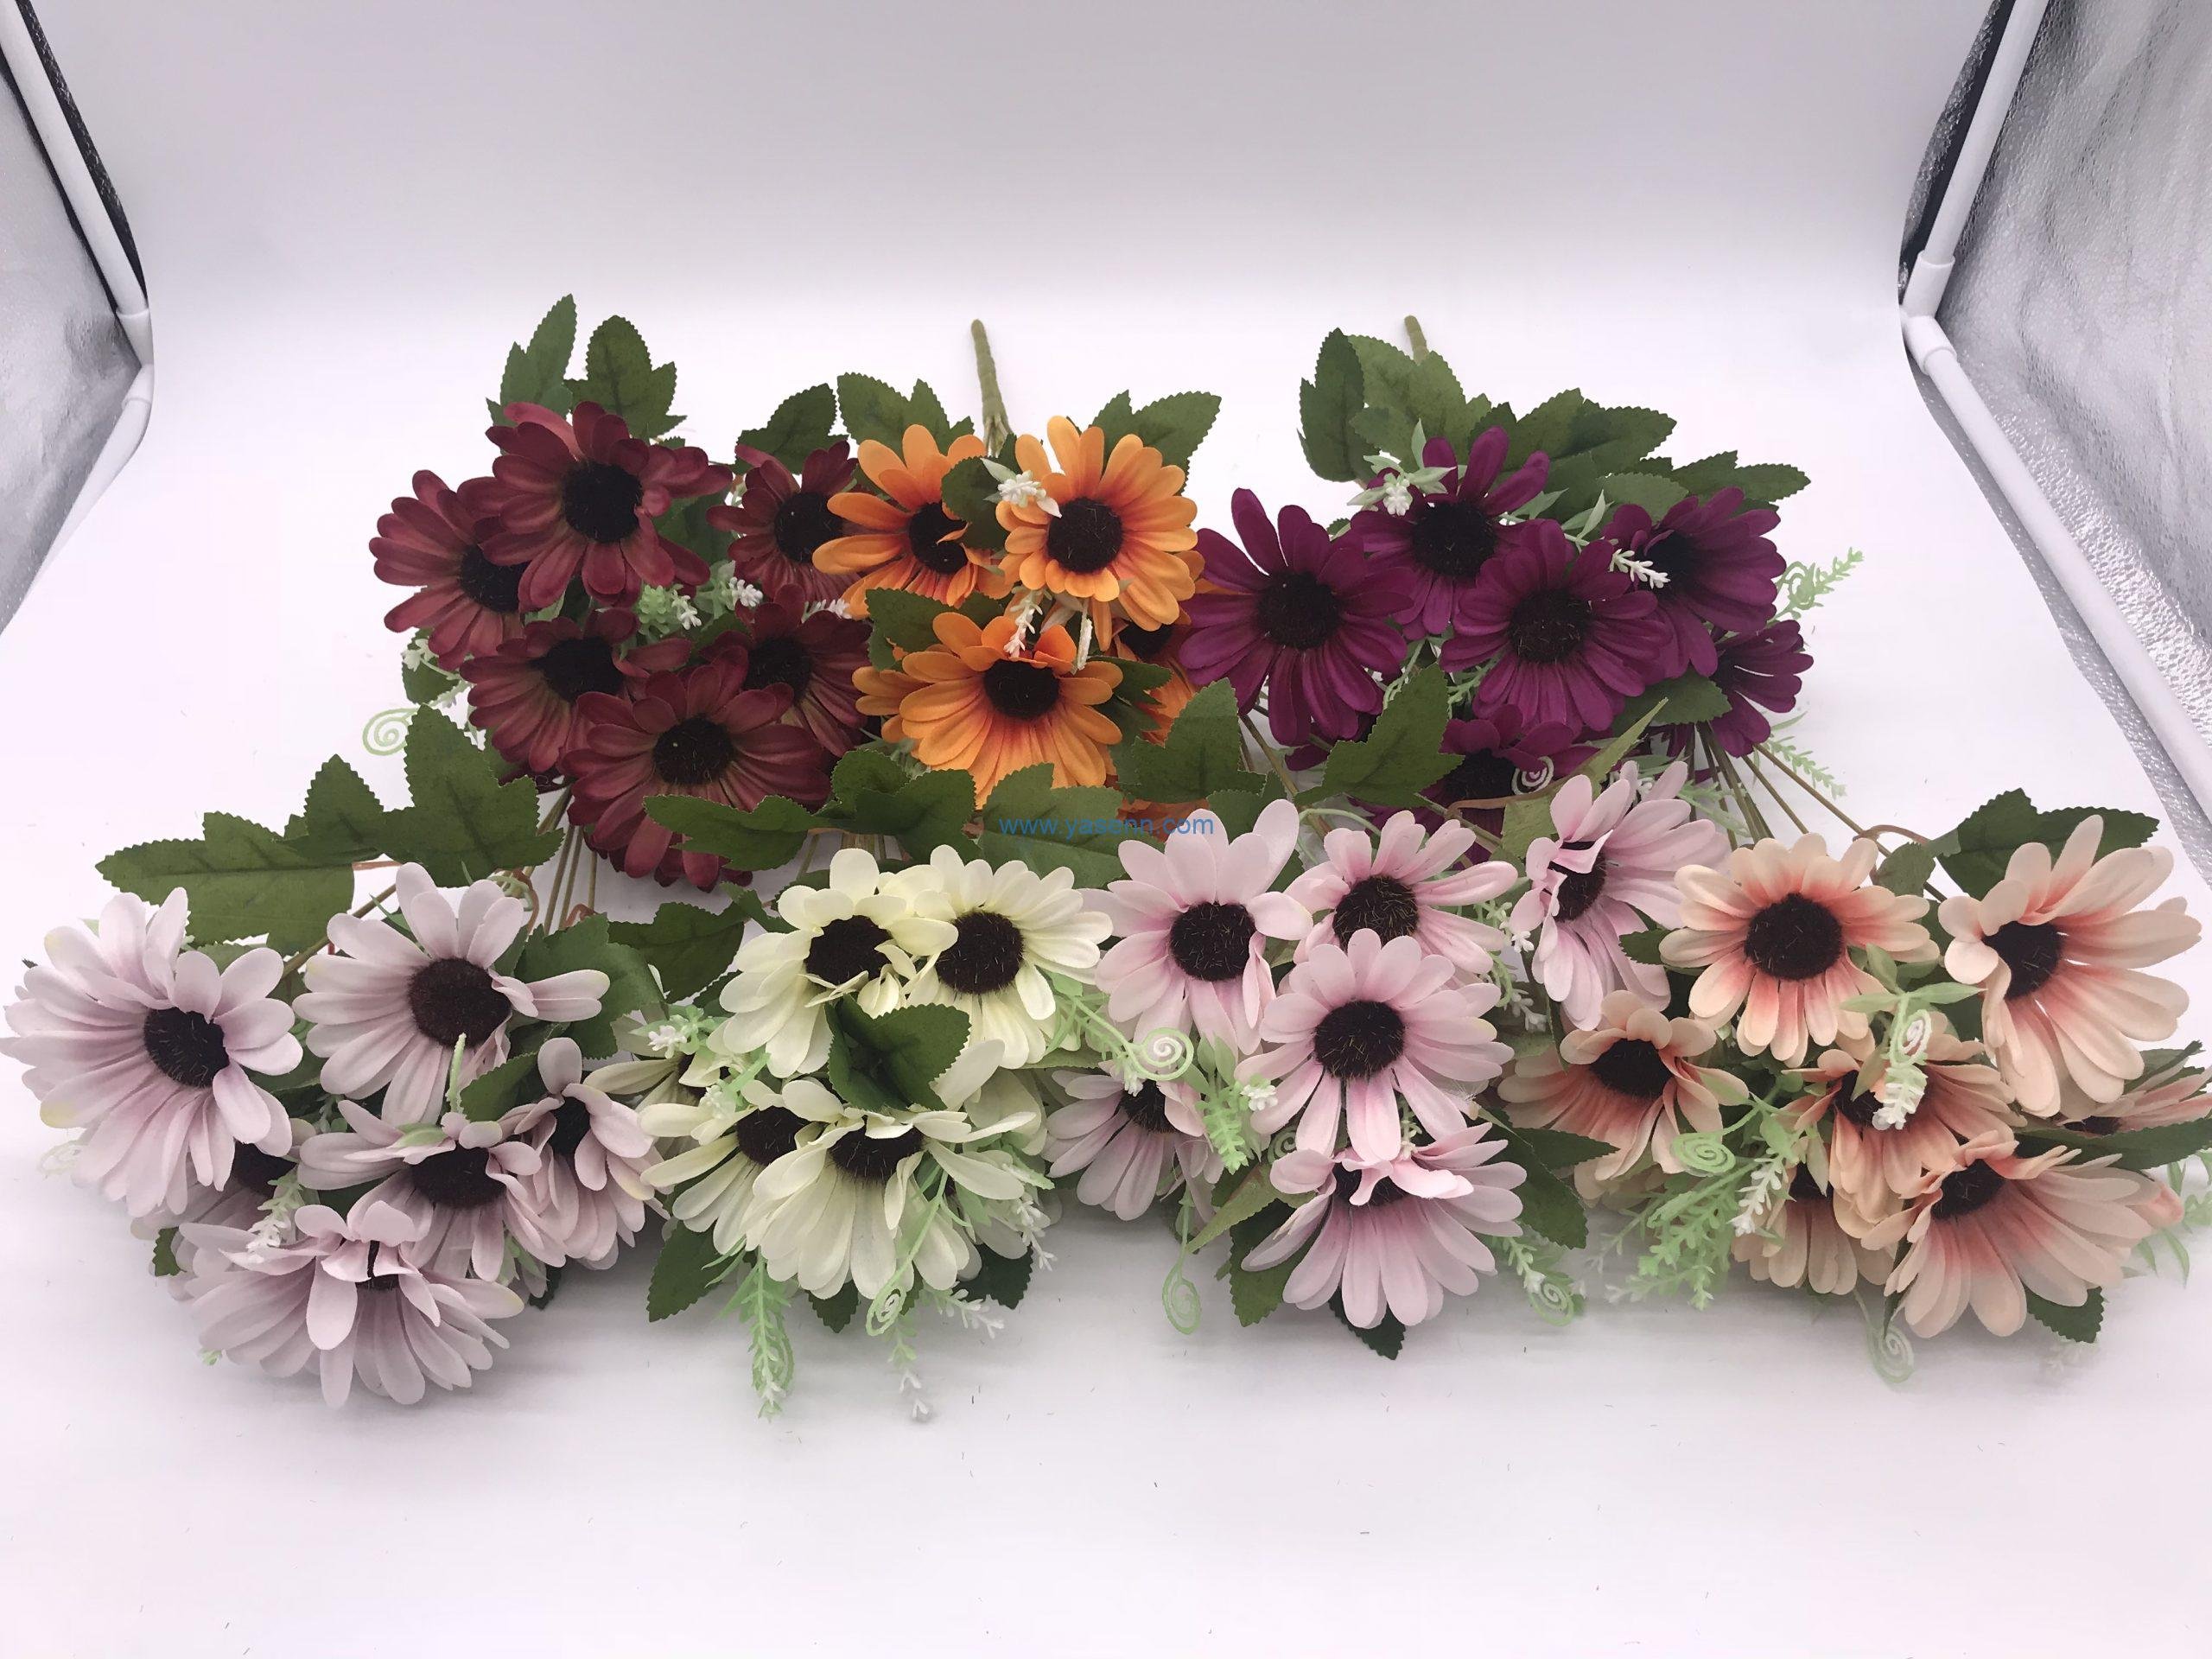 Autumn Artificial Flowers and Leaves